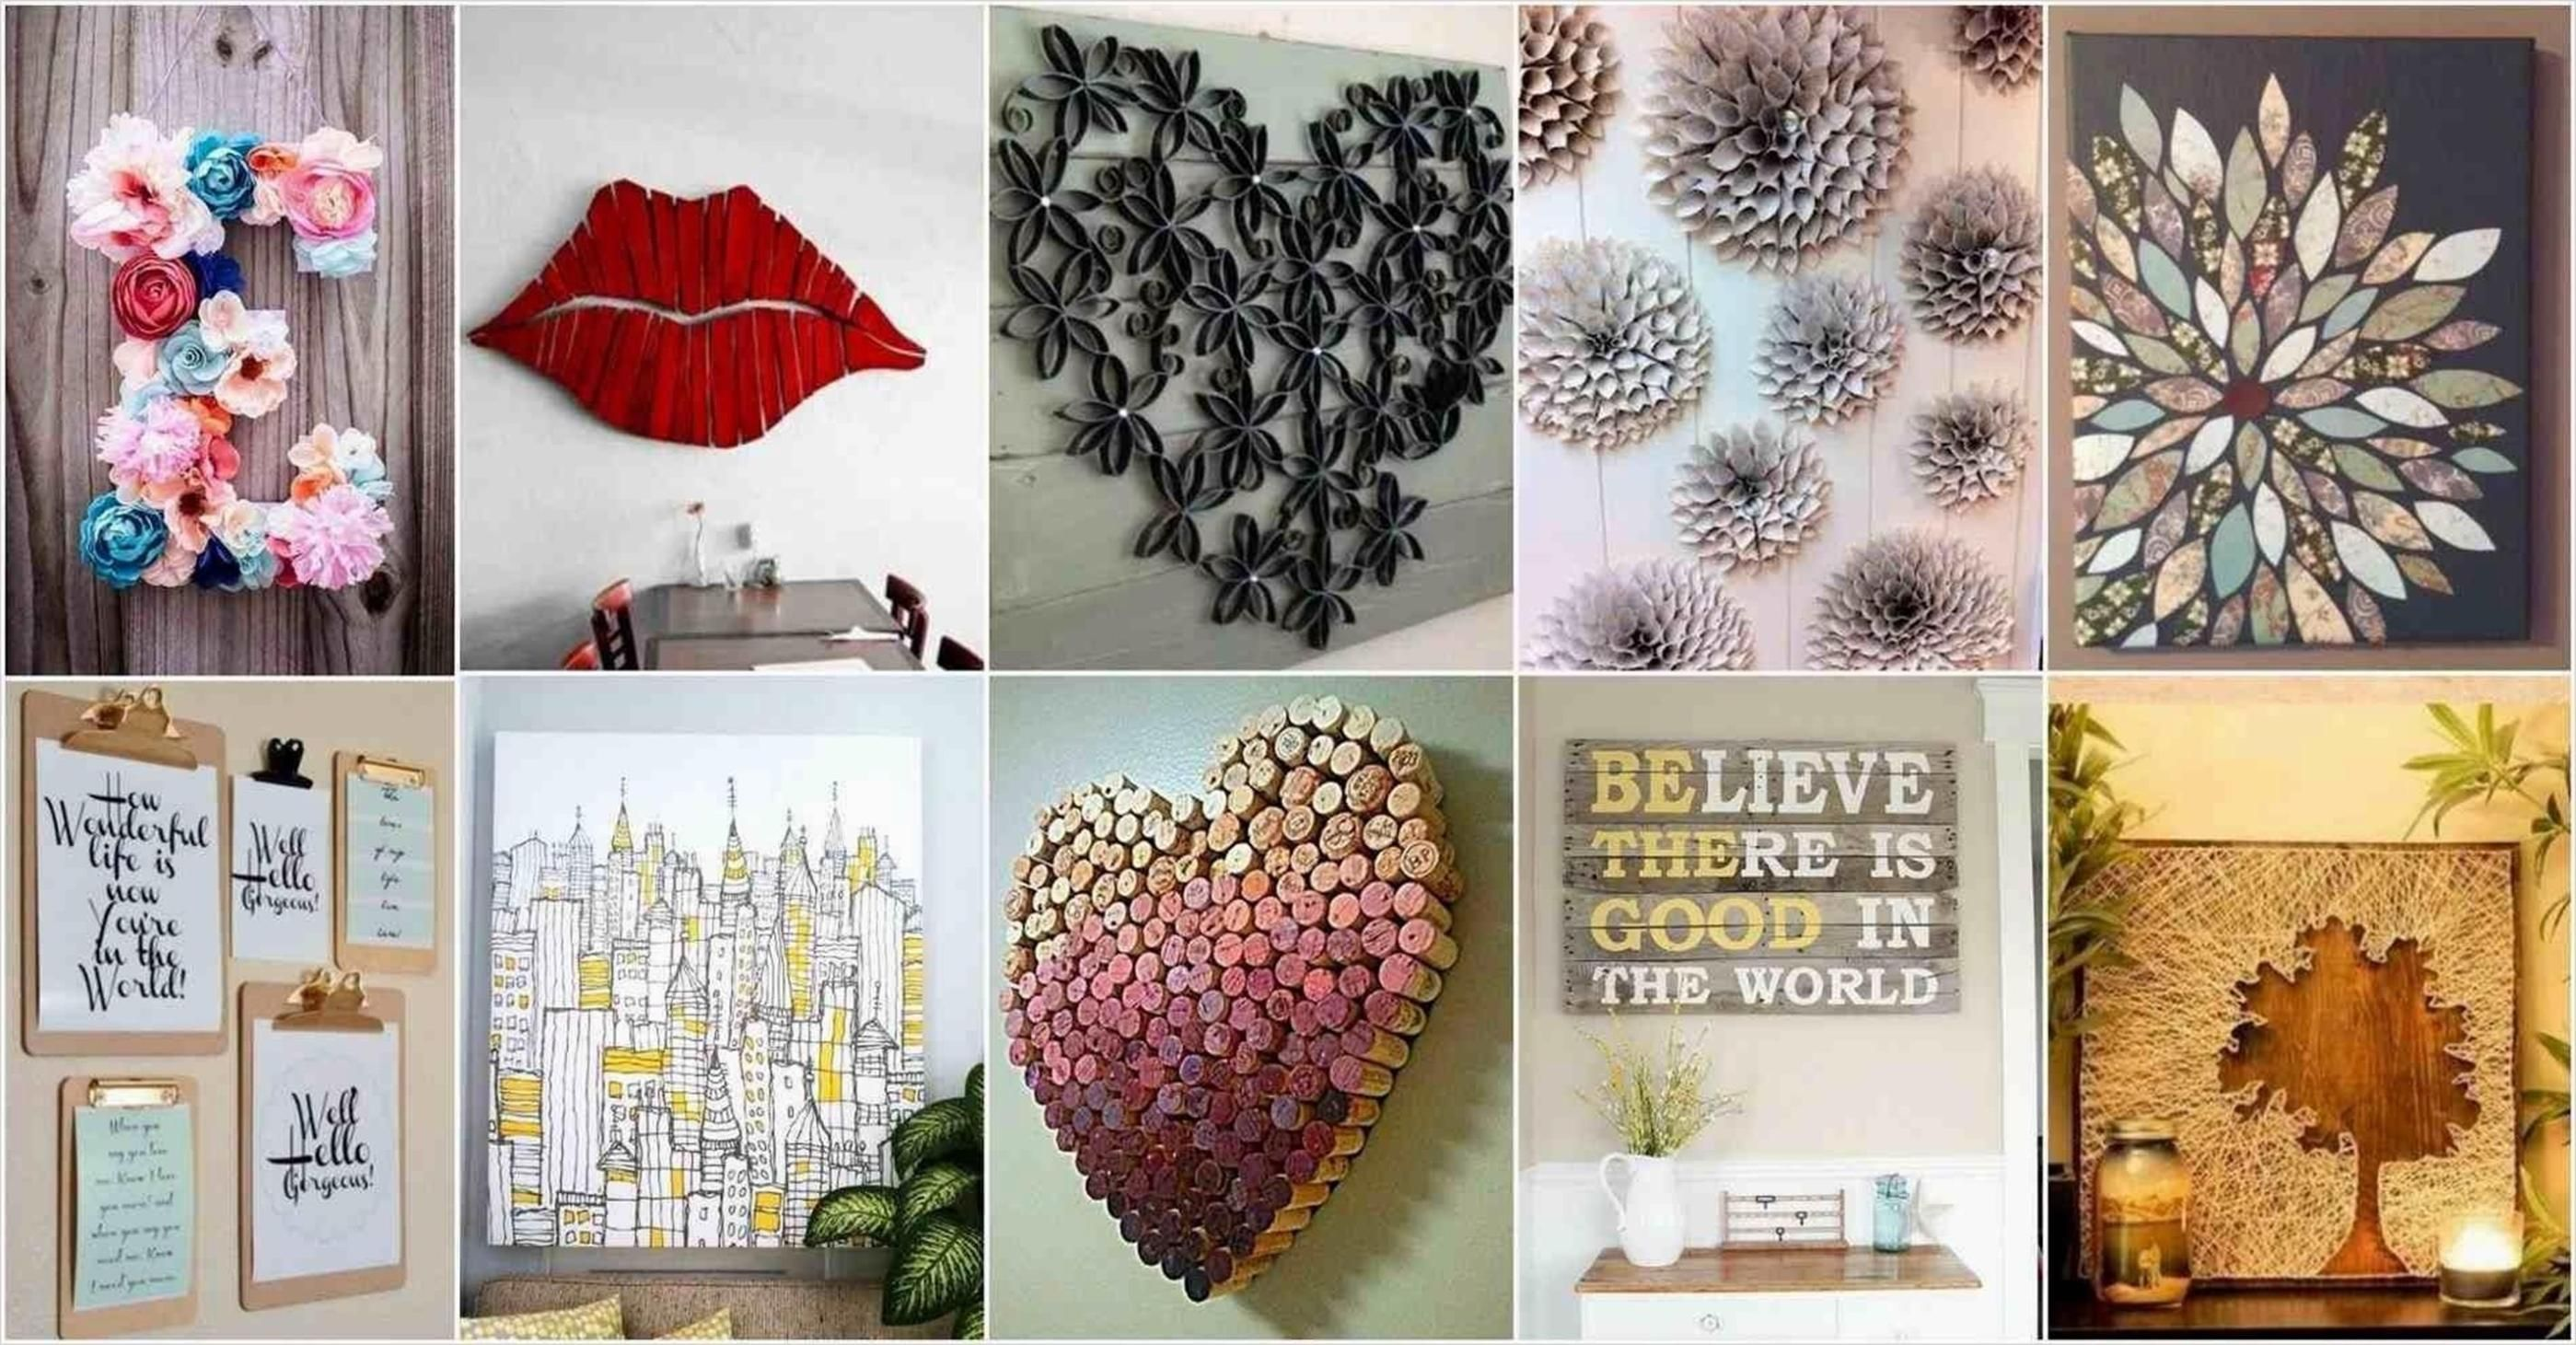 Diy 33 Creative Wall Decorating Ideas On A Budget Creative Wall